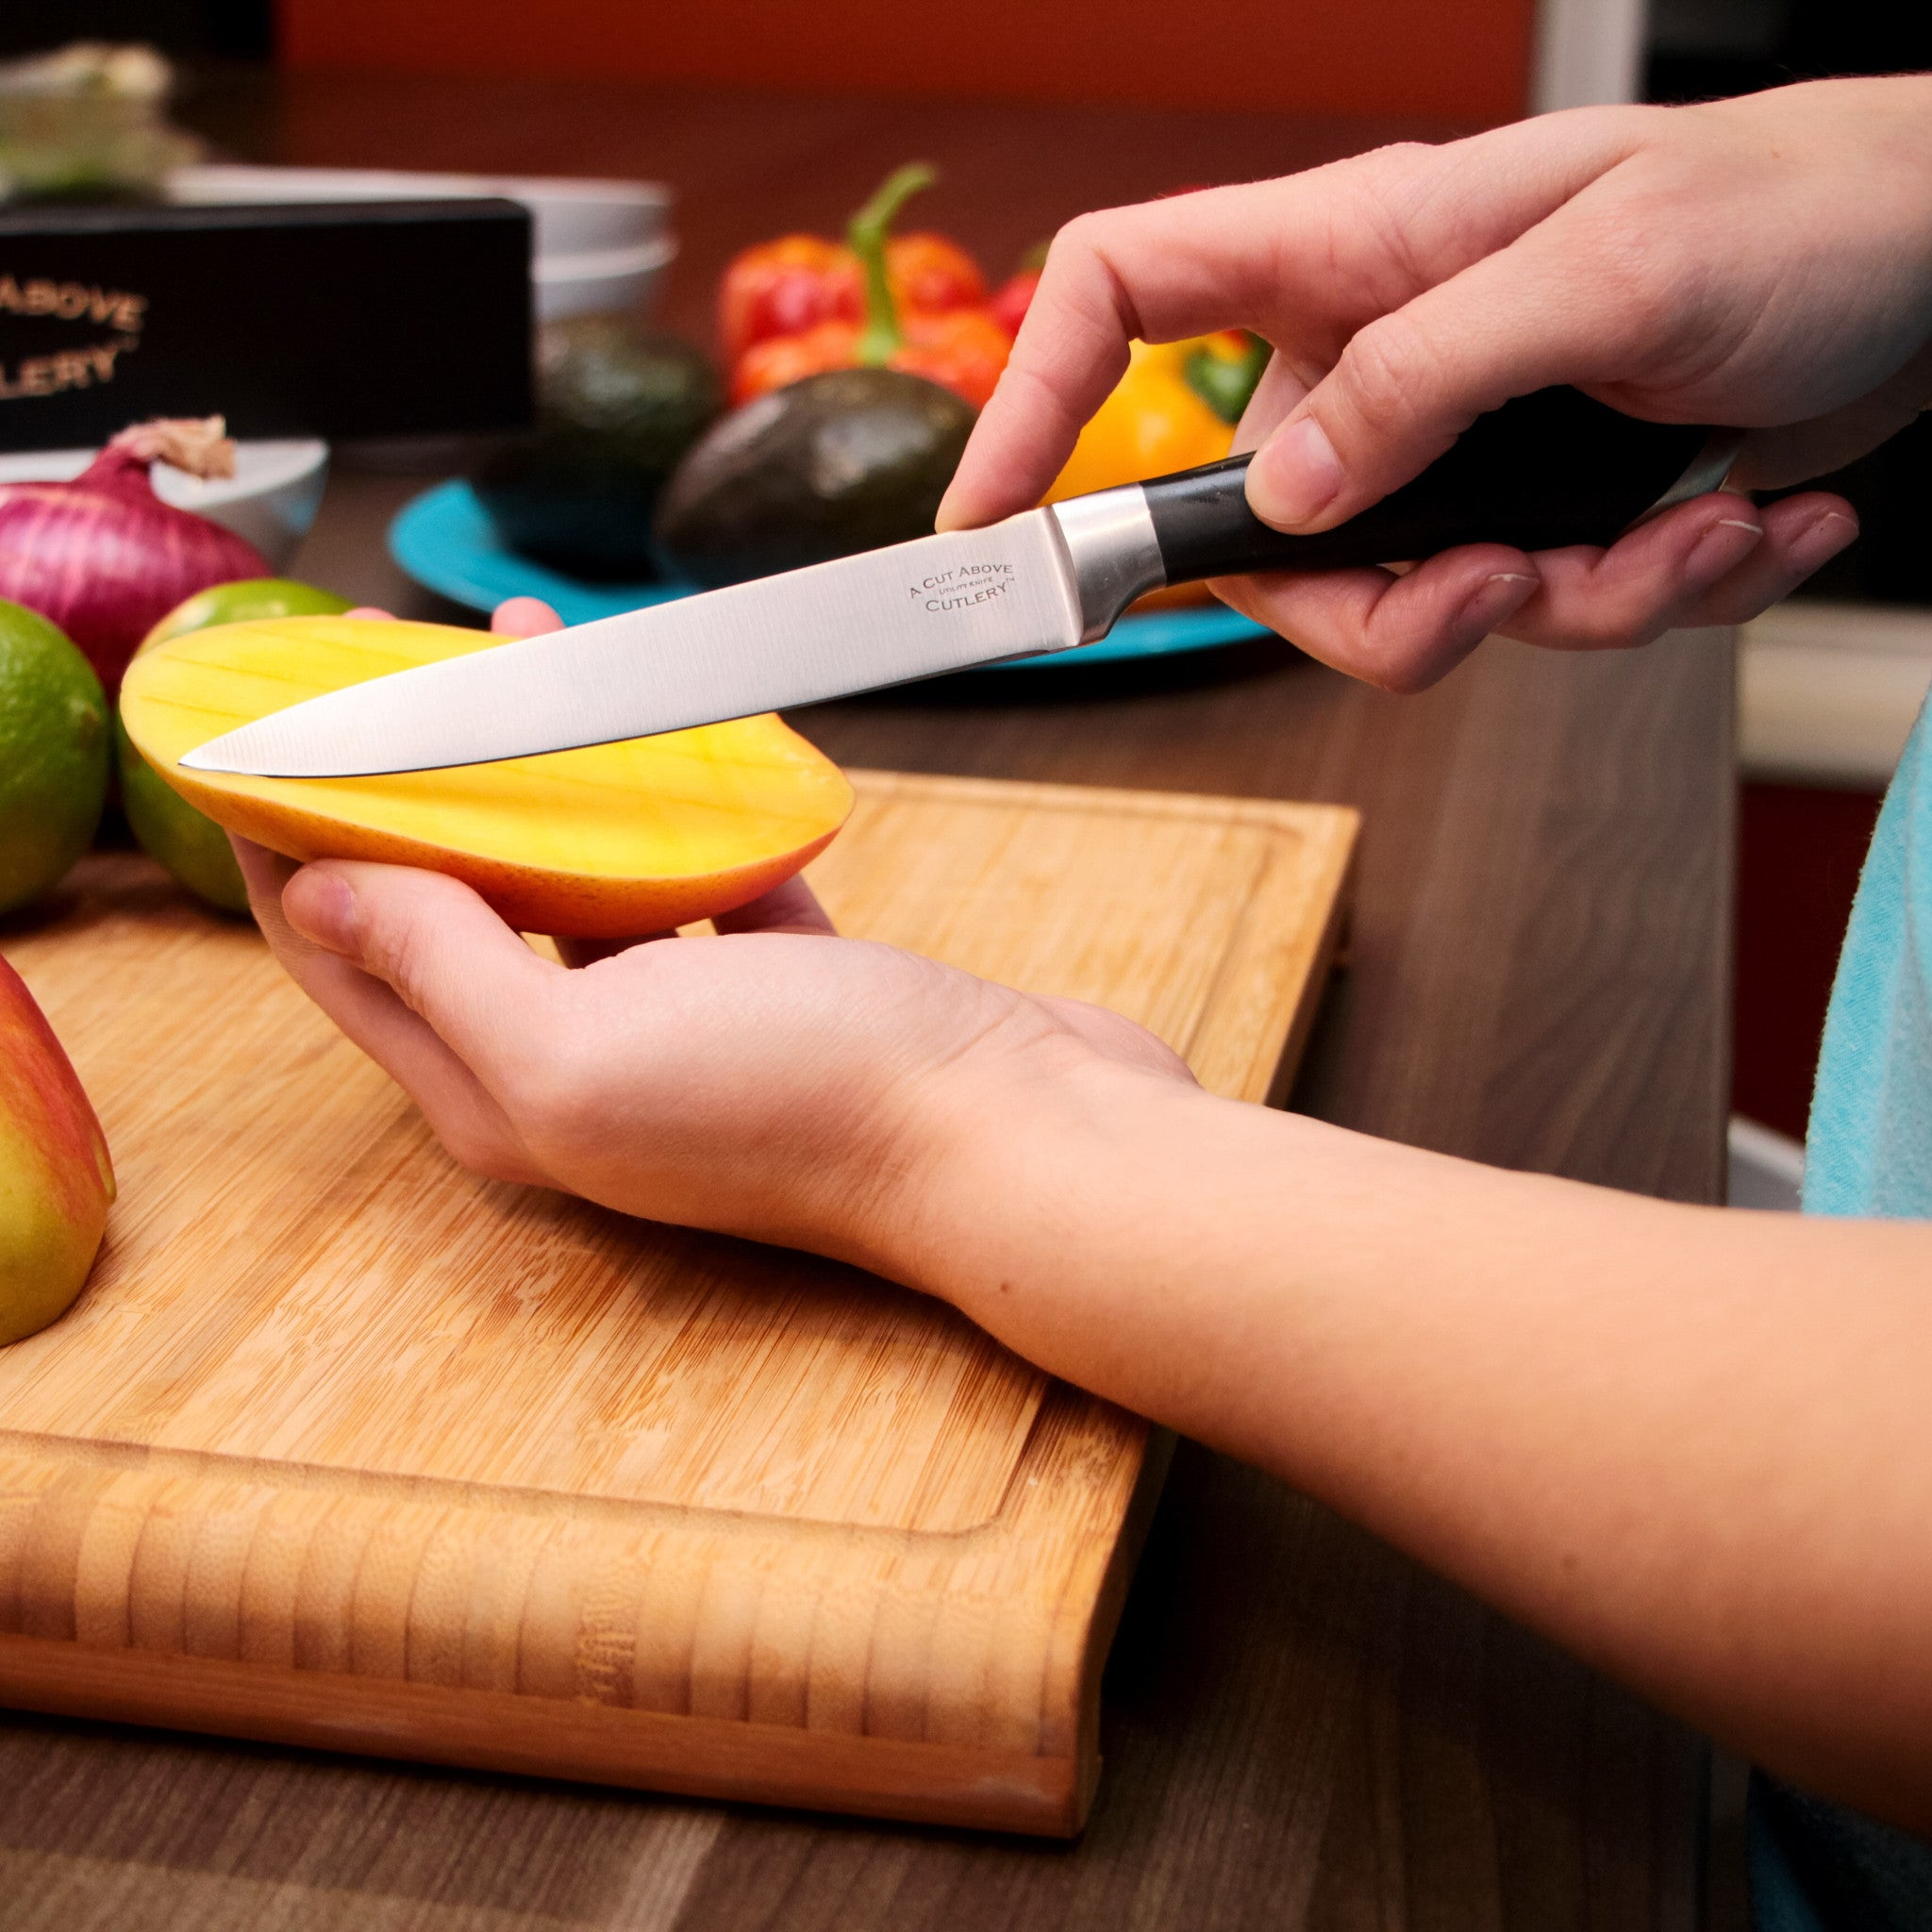 A Cut Above Cutlery Utility Knife. Forged Stainless Steel Construction, Slip Resistant Grip, 5 Inch Blade Holds Edge Well So You Sharpen Less Often. Peel, Core, Pare, Fruit and Vegetables, Prep Sushi